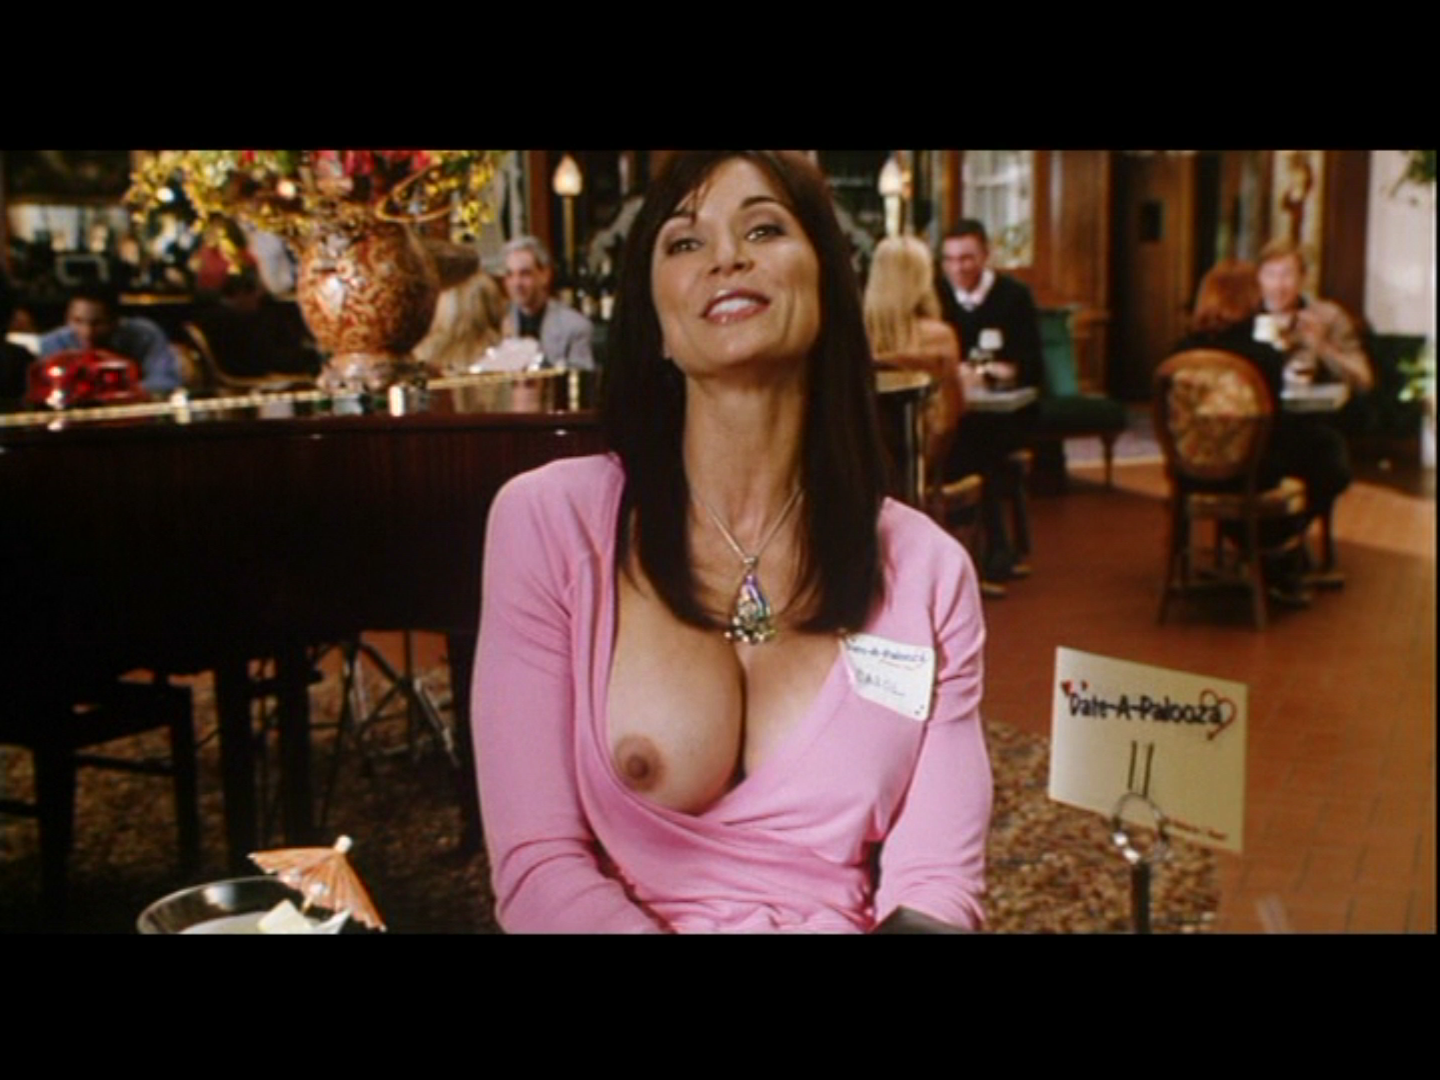 40 year old virgin speed dating scene gina